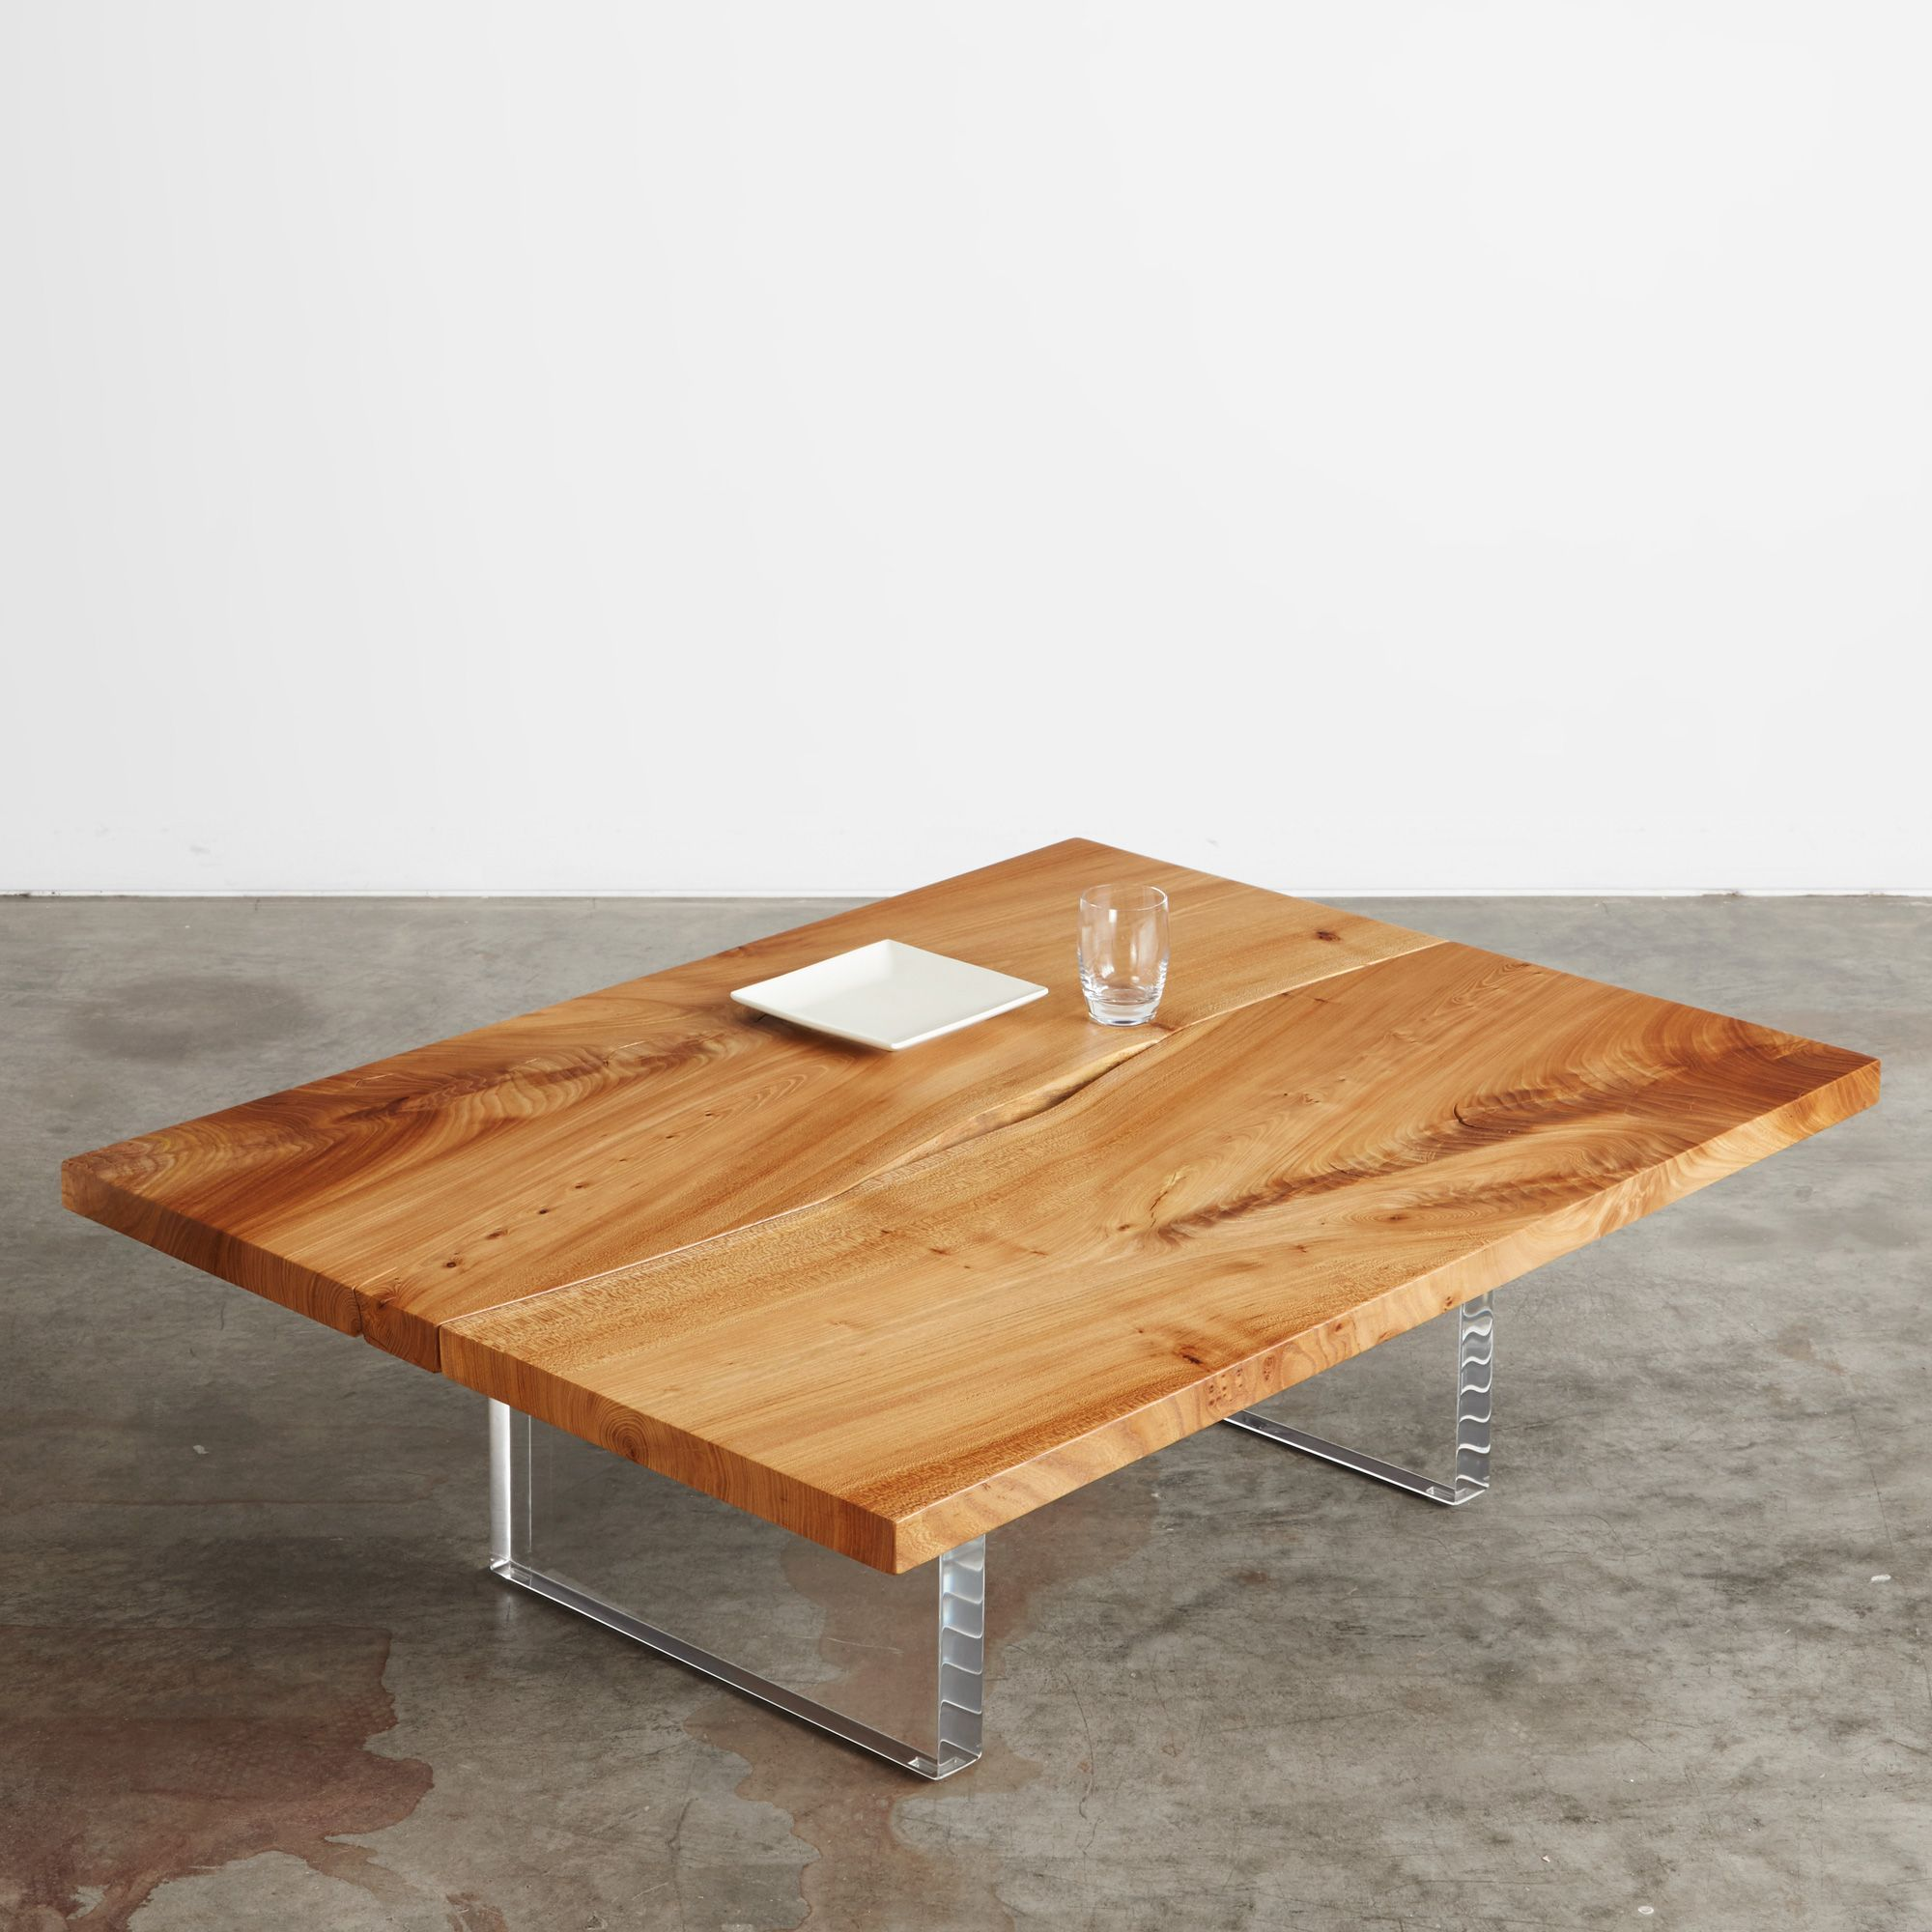 a64ba24cb75abec4313528a027765b2f Top Result 50 Lovely Redwood Coffee Table Photos 2017 Hgd6